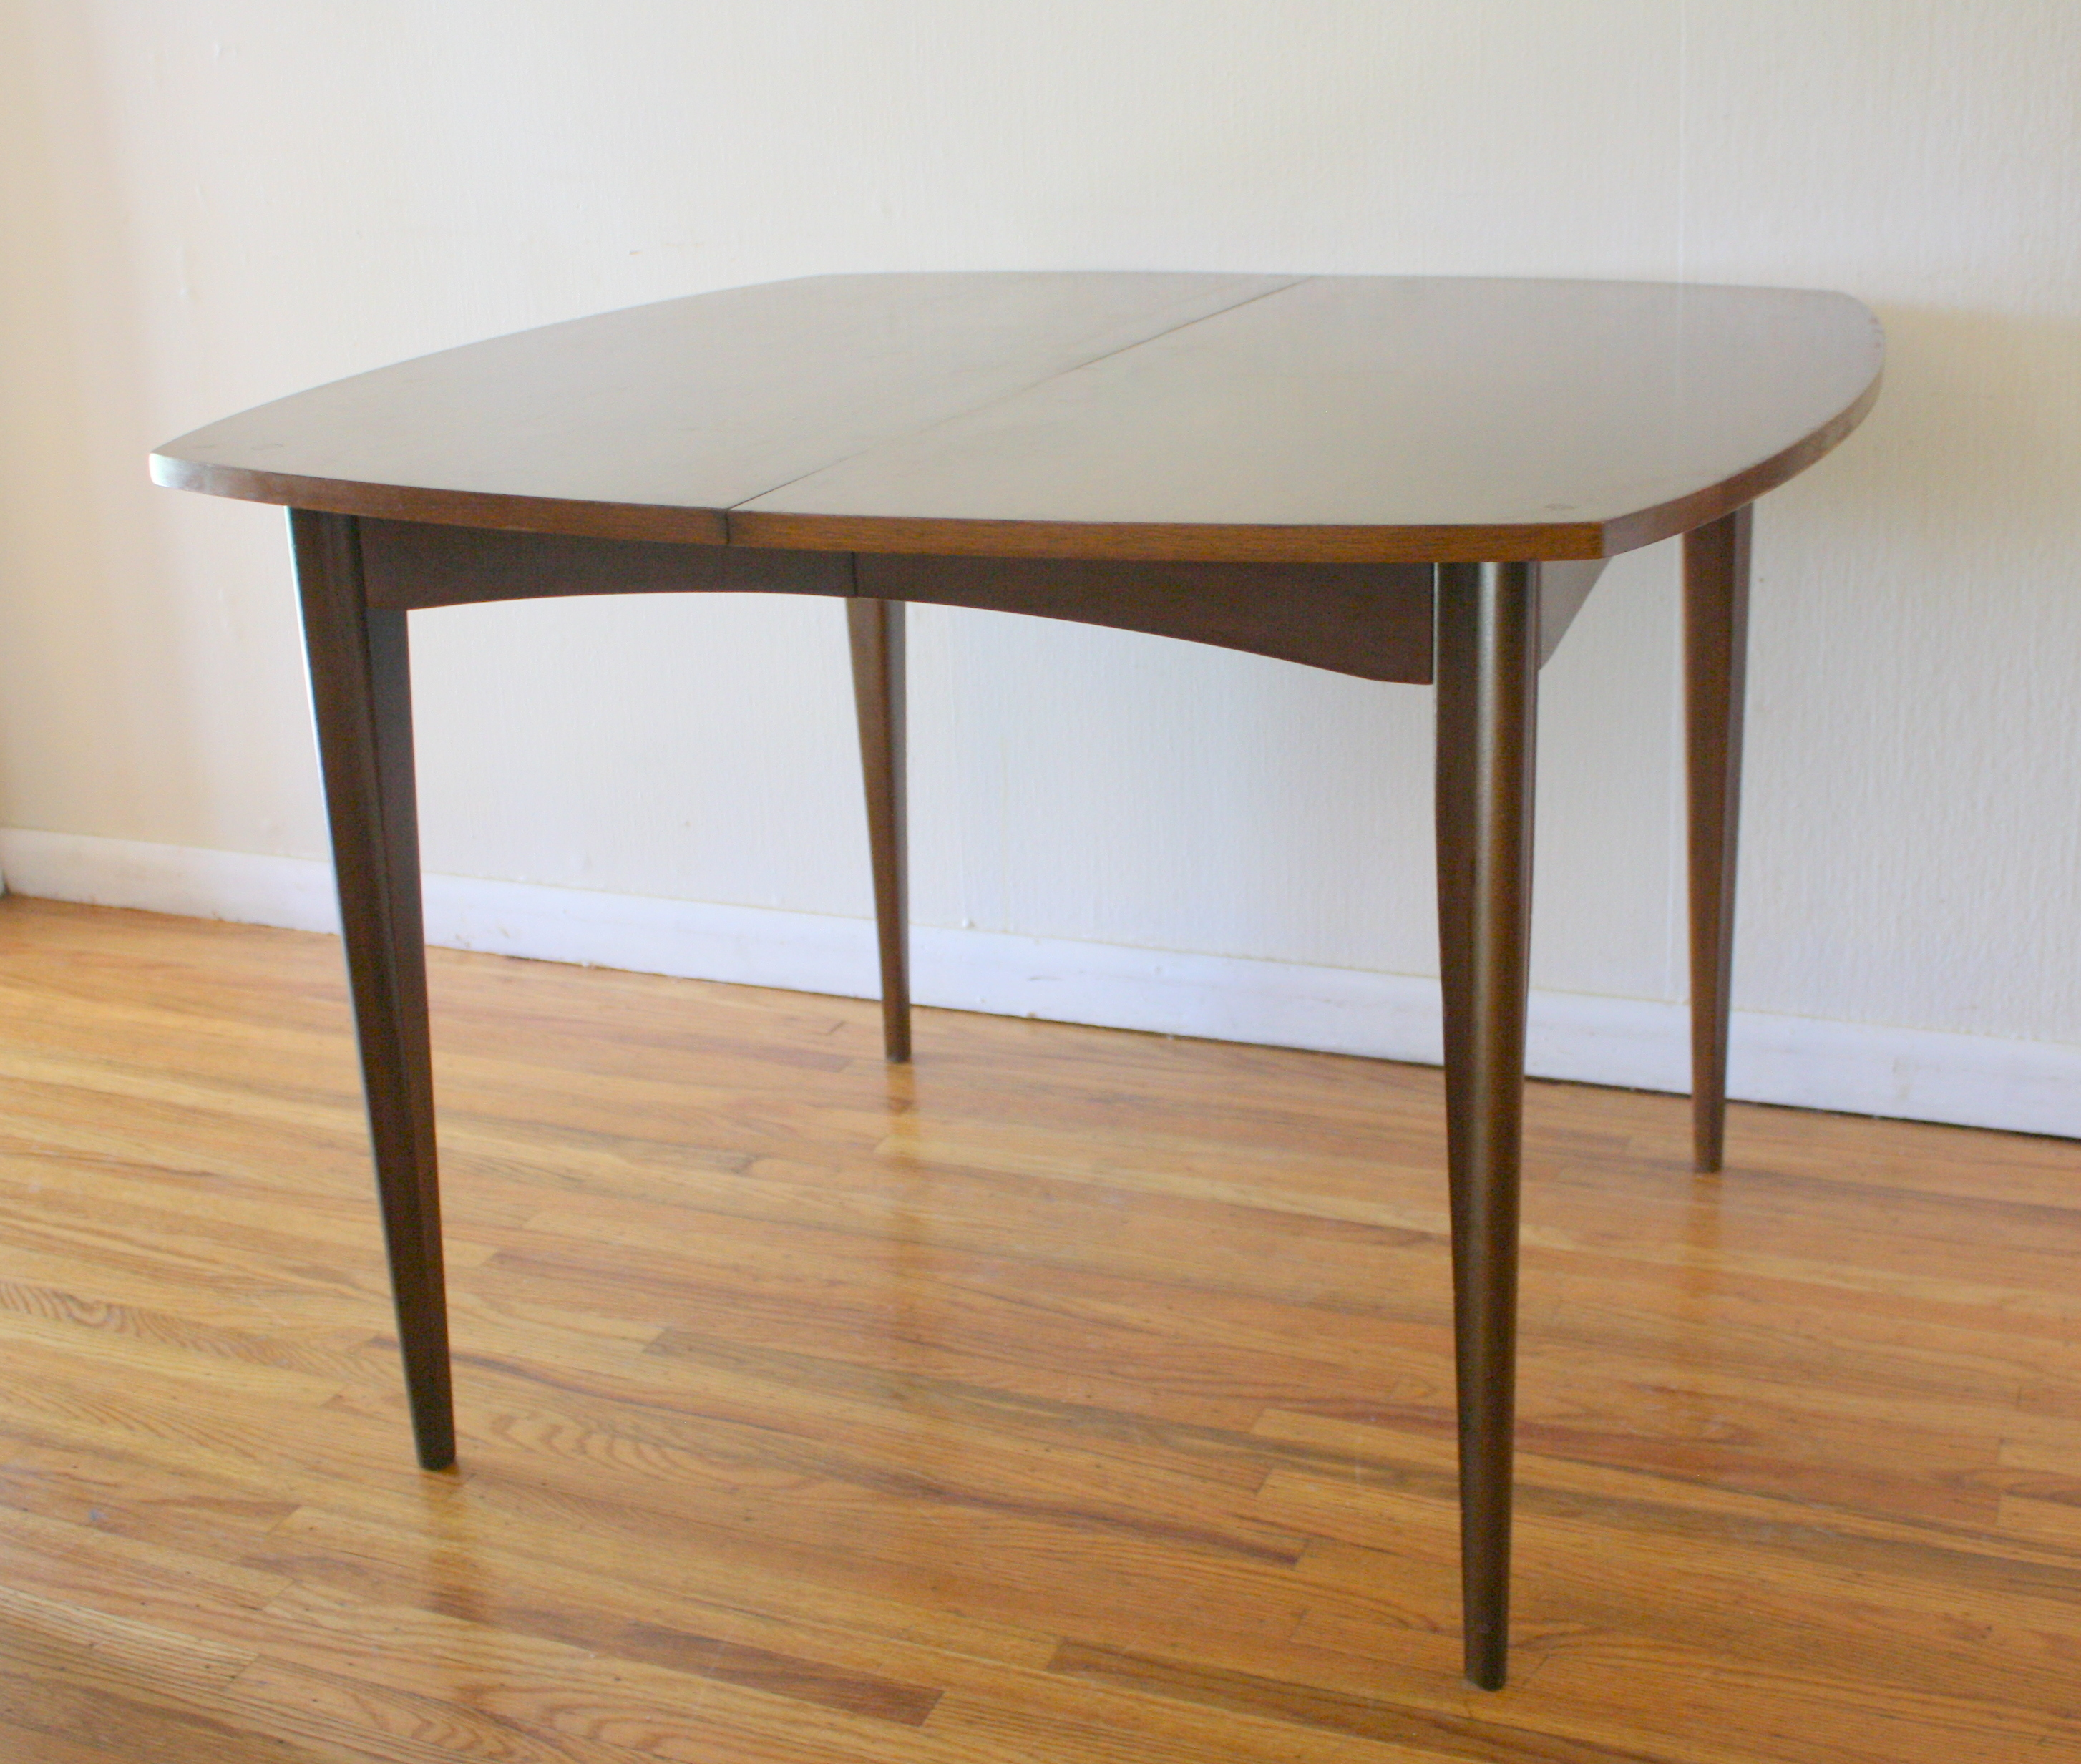 Mid Century Modern Surfboard Dining Table Picked Vintage - 48 square dining table with leaf